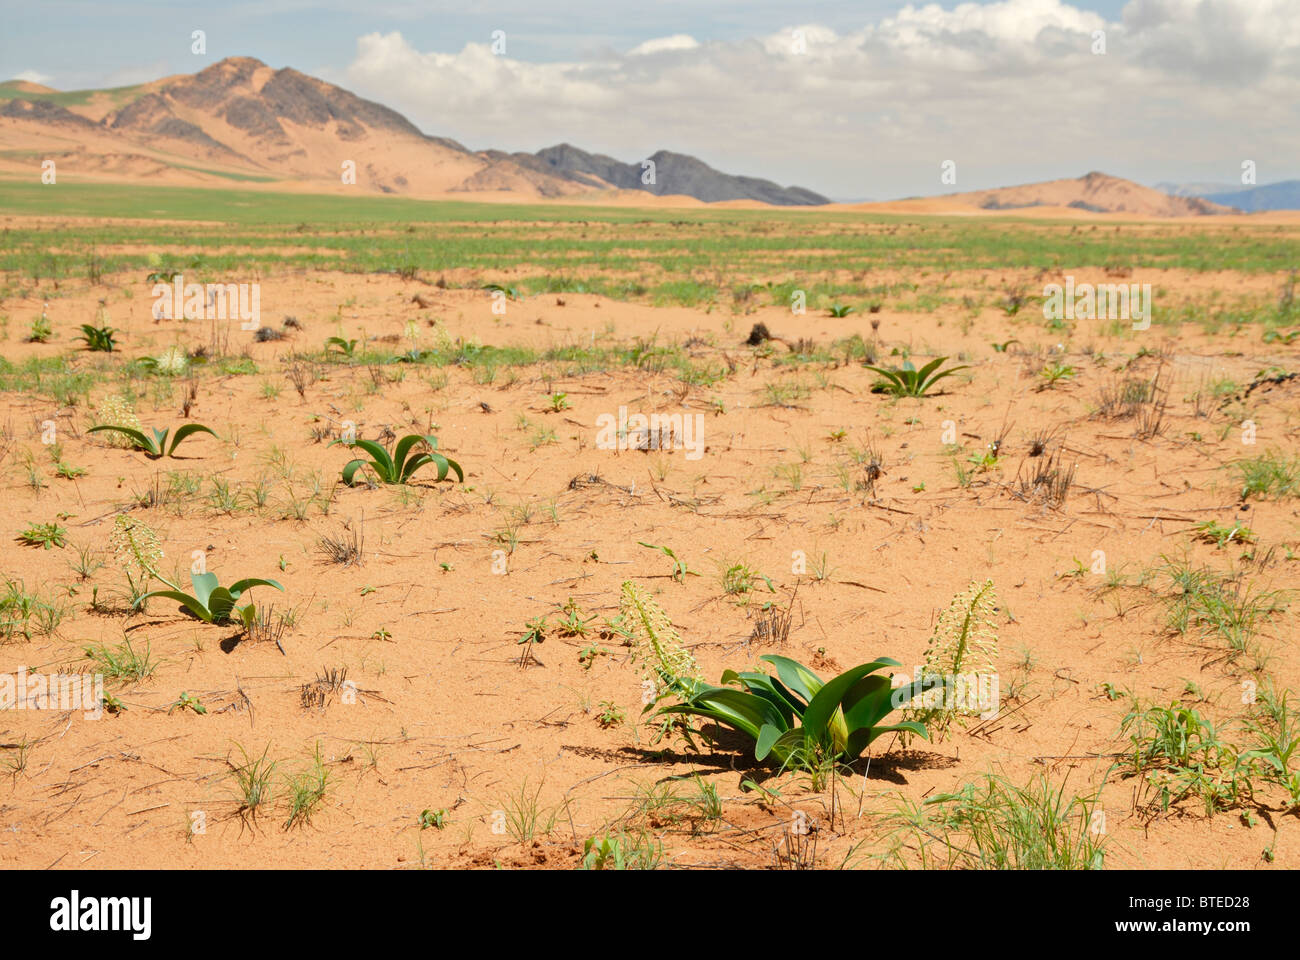 Scenic view of sandy plains with bulbous flowers - Stock Image